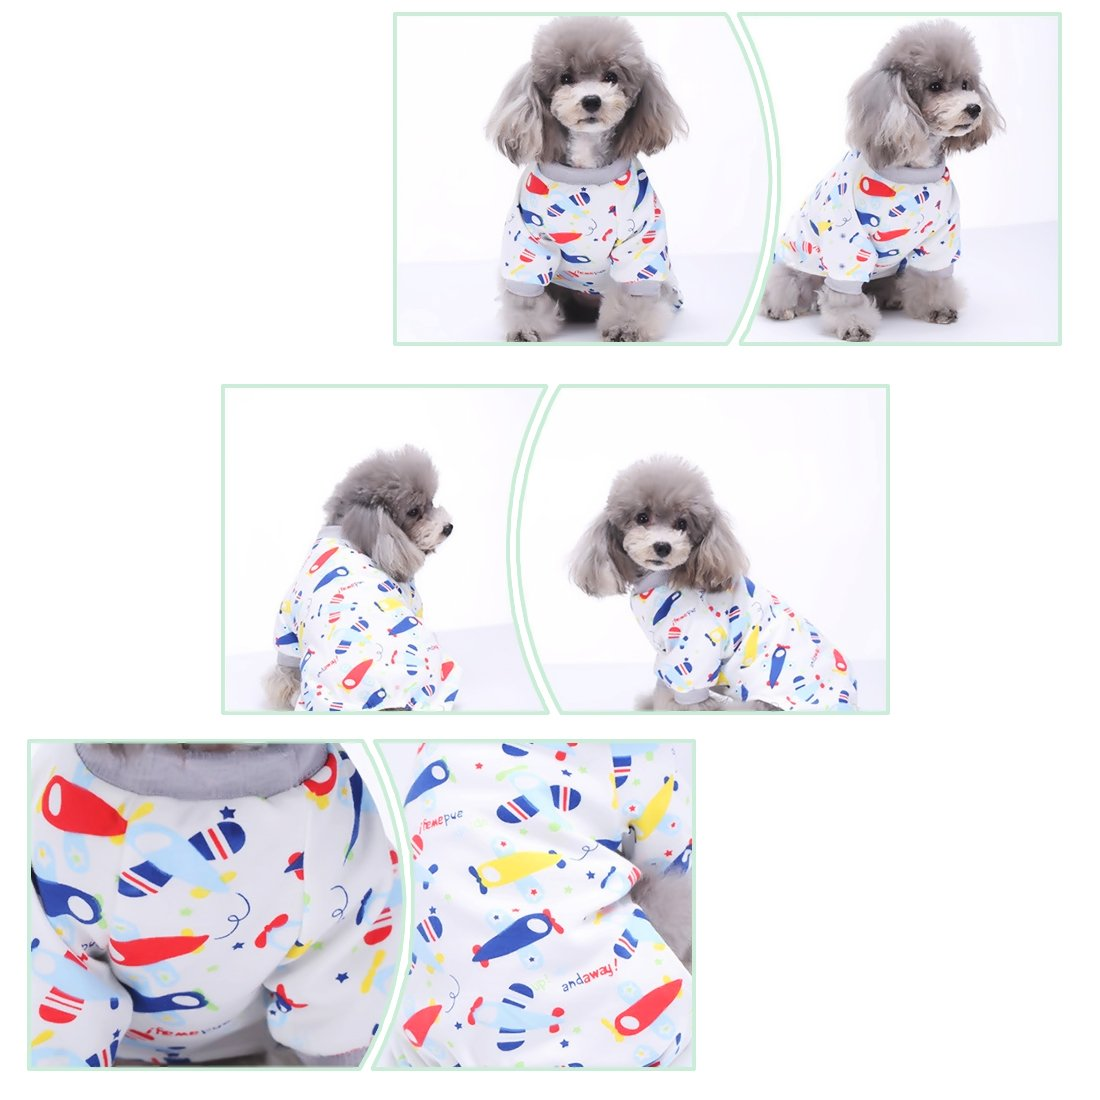 Scheppend Puppy Dog Pajamas Cozy Soft Jumpsuits Pet Sleeping Suit Clothes for Small Medium 2-Pack